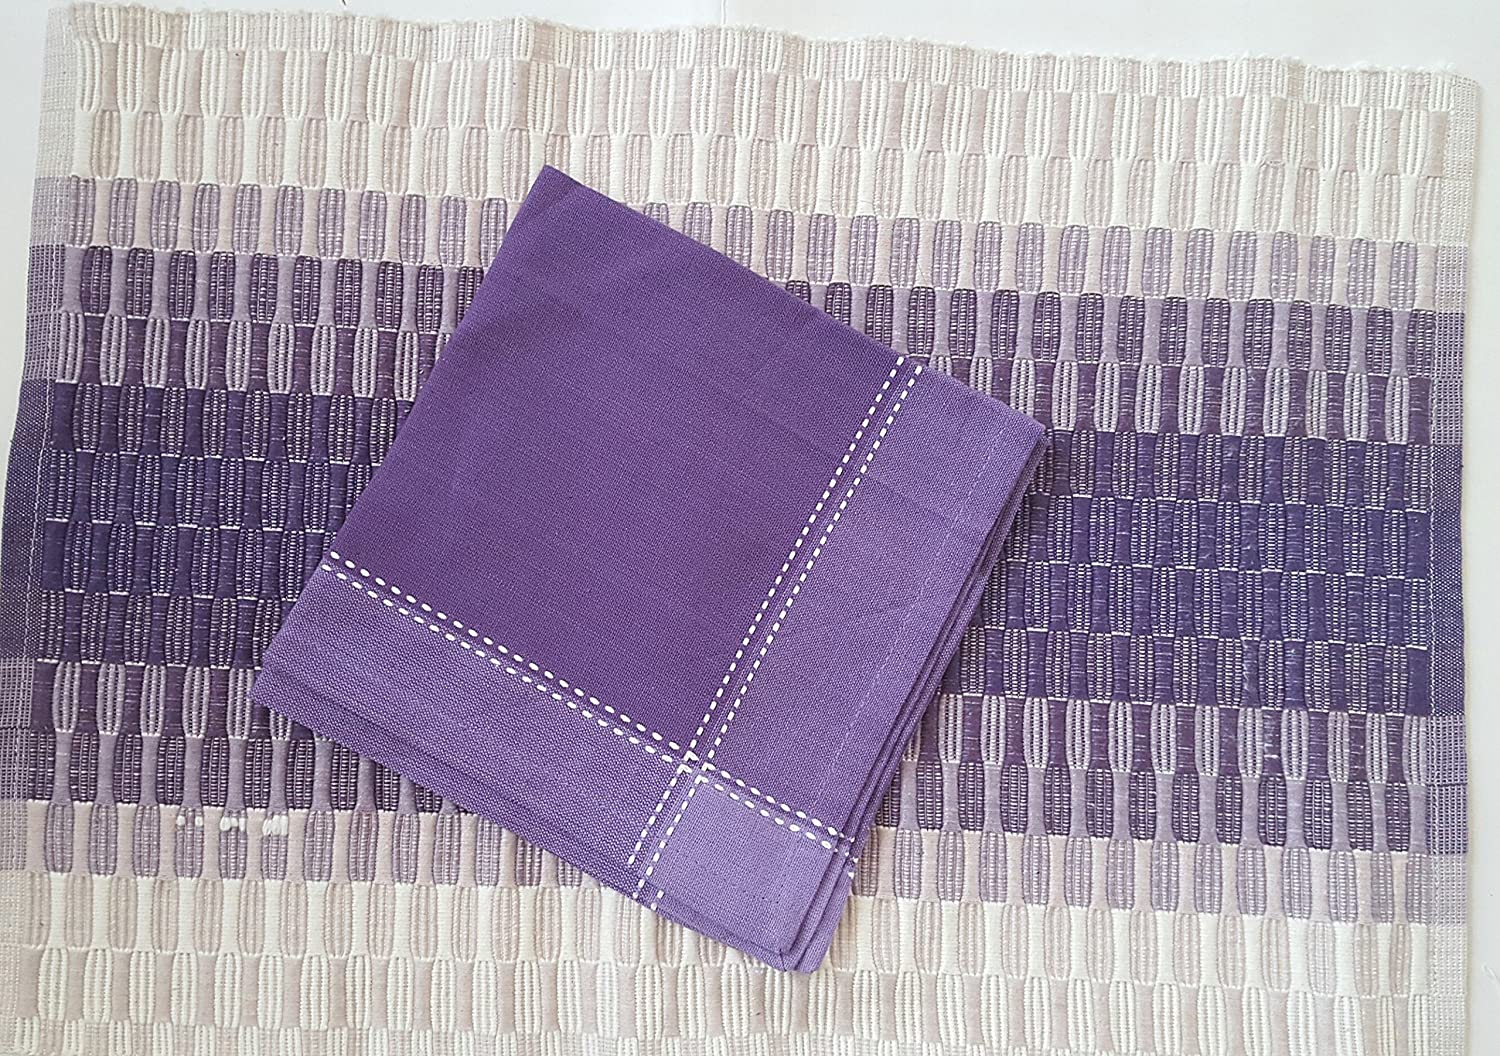 Buy Ribbed Cotton Table Linen Placemat Set 12 Pcs 6 Placemats 6 Napkins Lilac Cream Online At Low Prices In India Amazon In